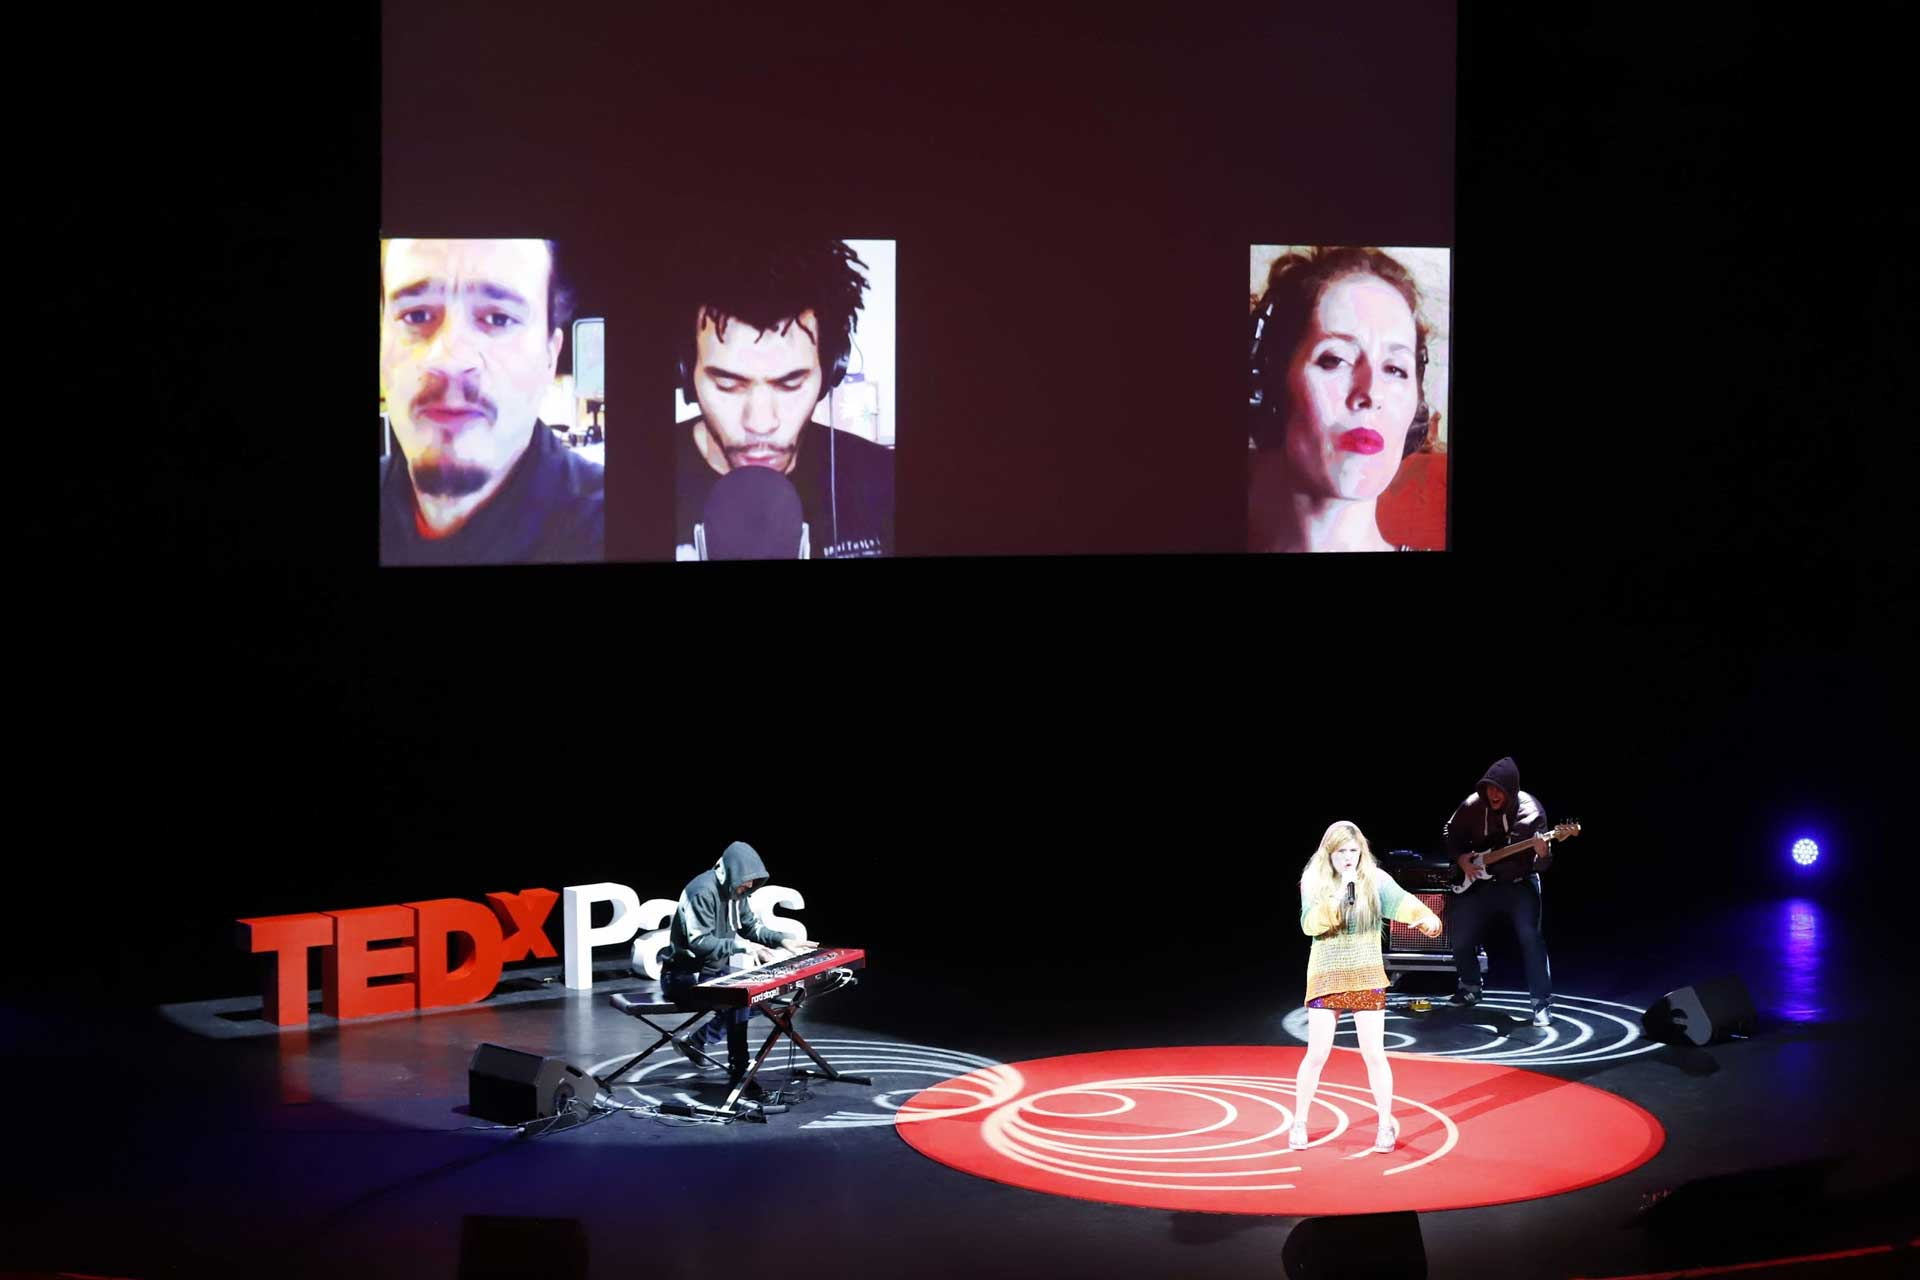 conference-TEDxParis-2018-13.jpg